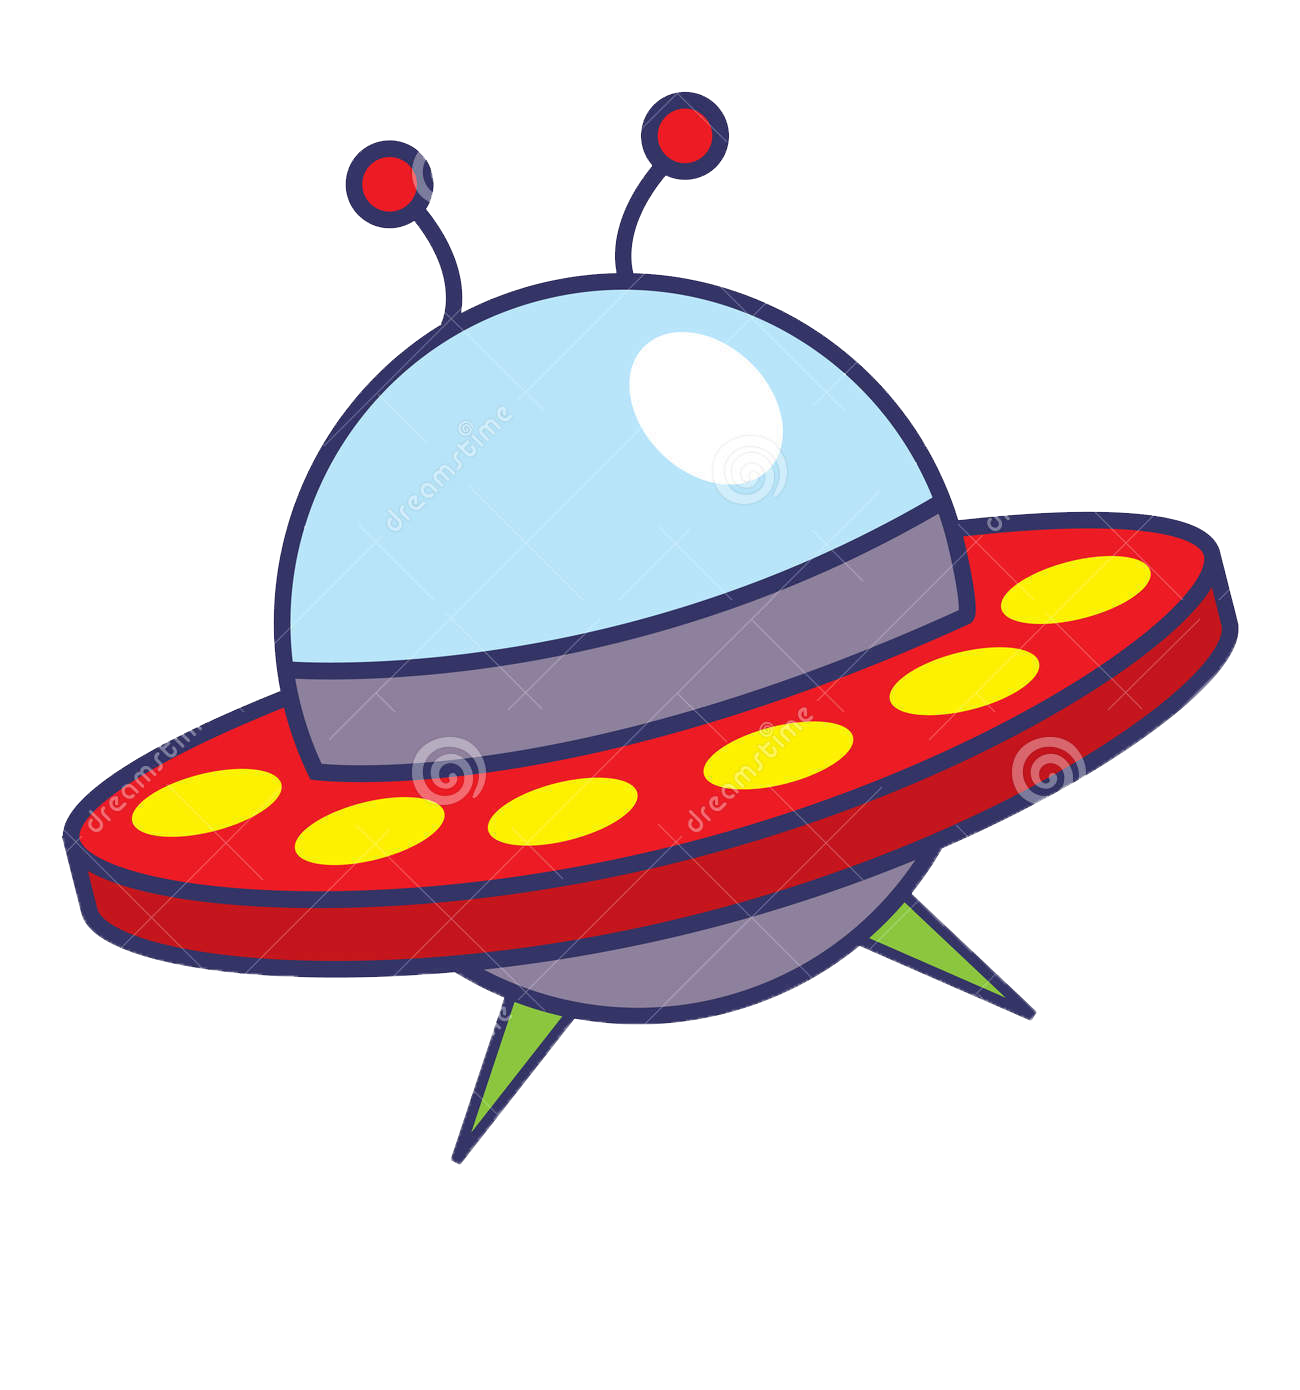 Cartoon spacecraft extraterrestrial life. Spaceship clipart starship